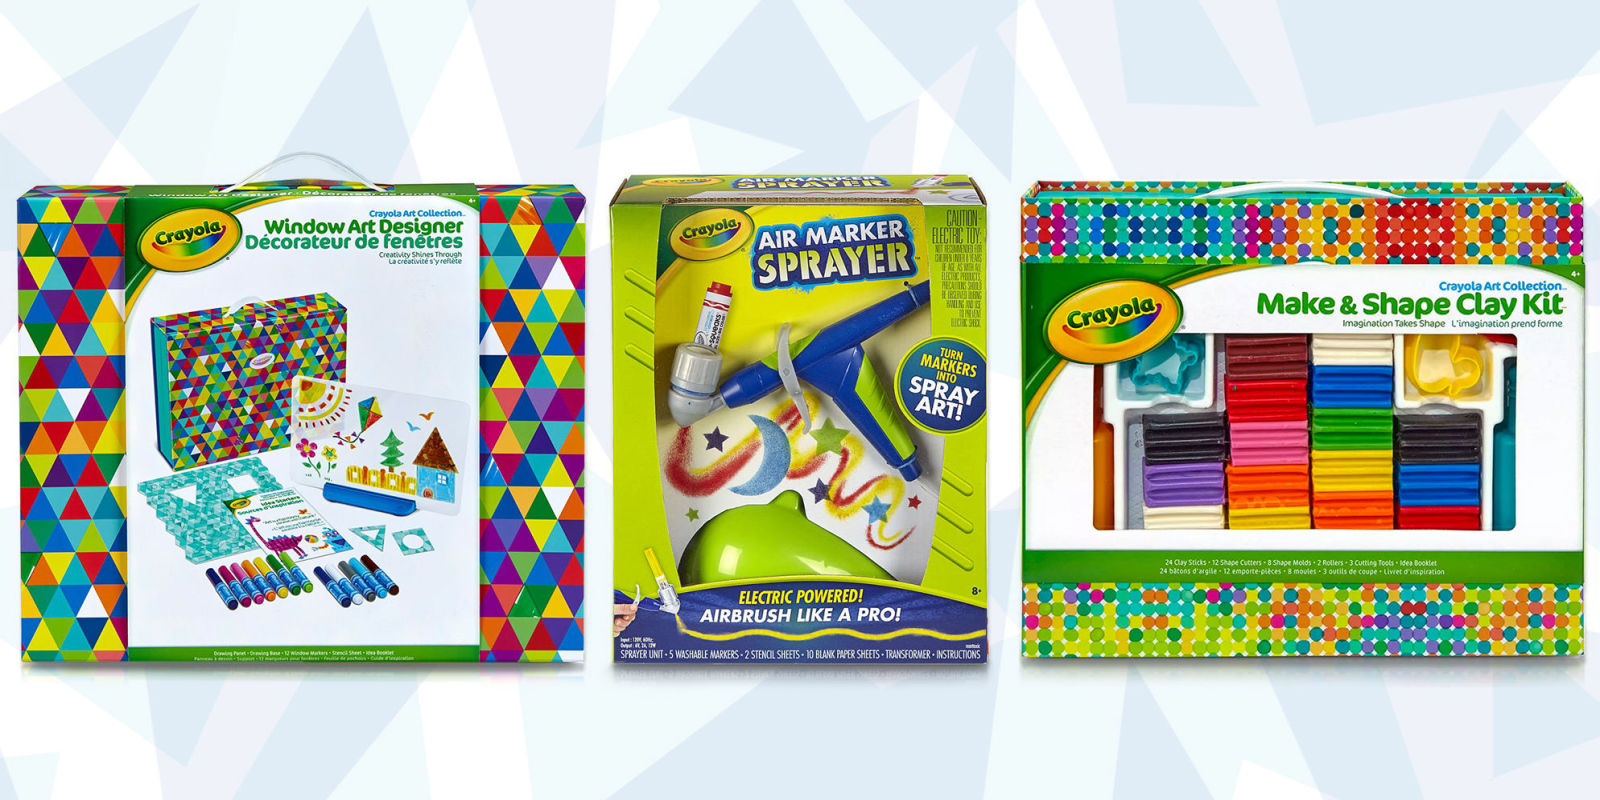 Tinkerbell Bedroom Decor 9 Best Crayola Products For Kids In 2018 Crayola Crayons